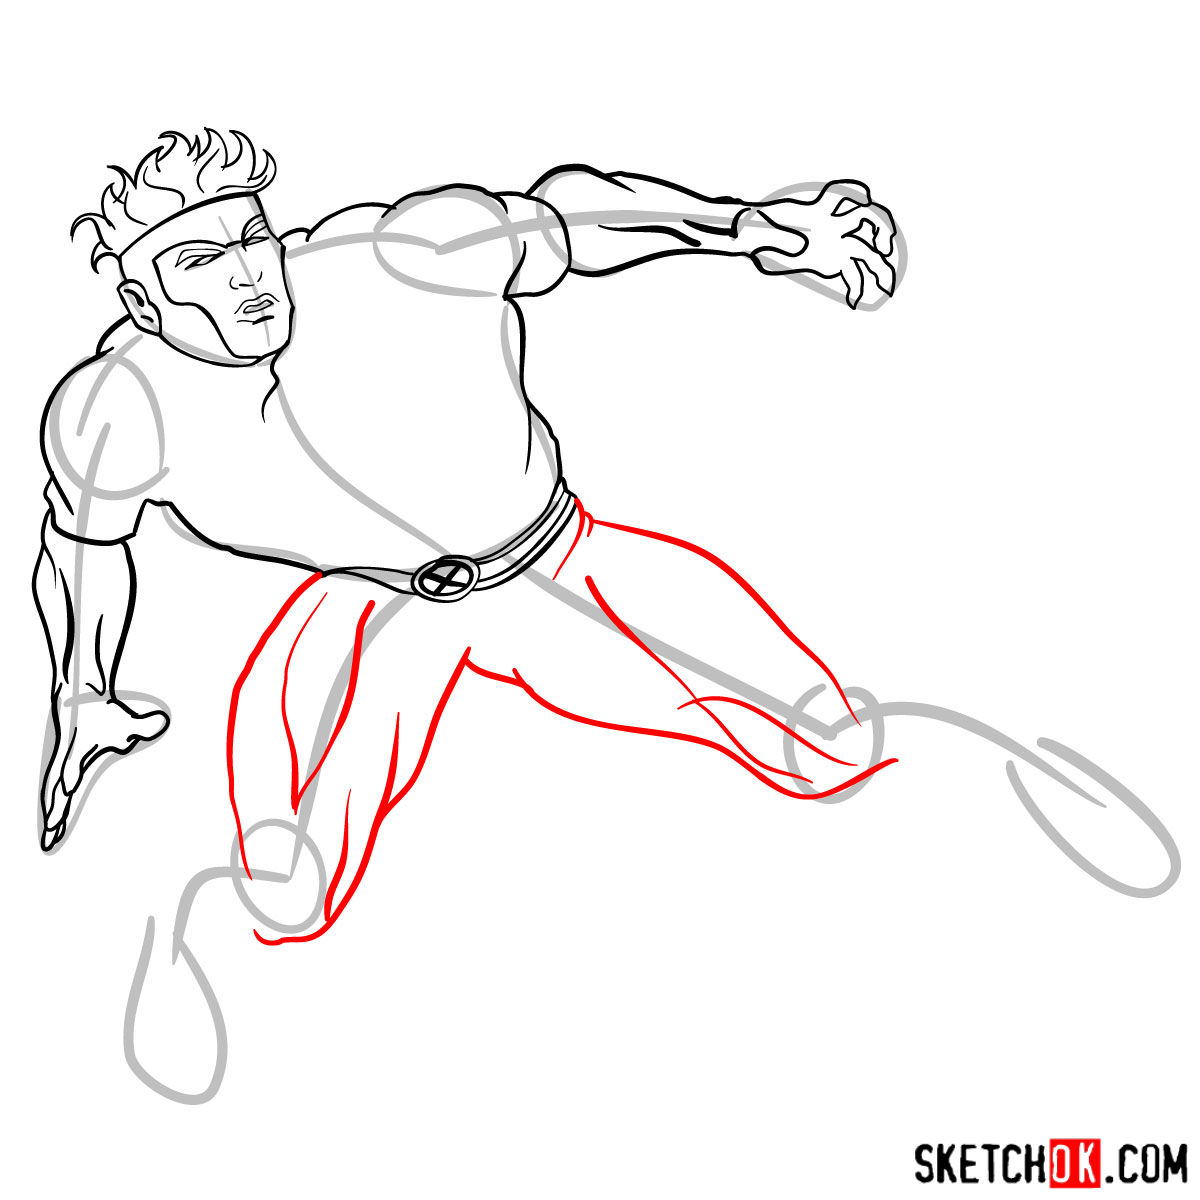 How to draw Havok from X-Men series - step by step tutorial - step 10